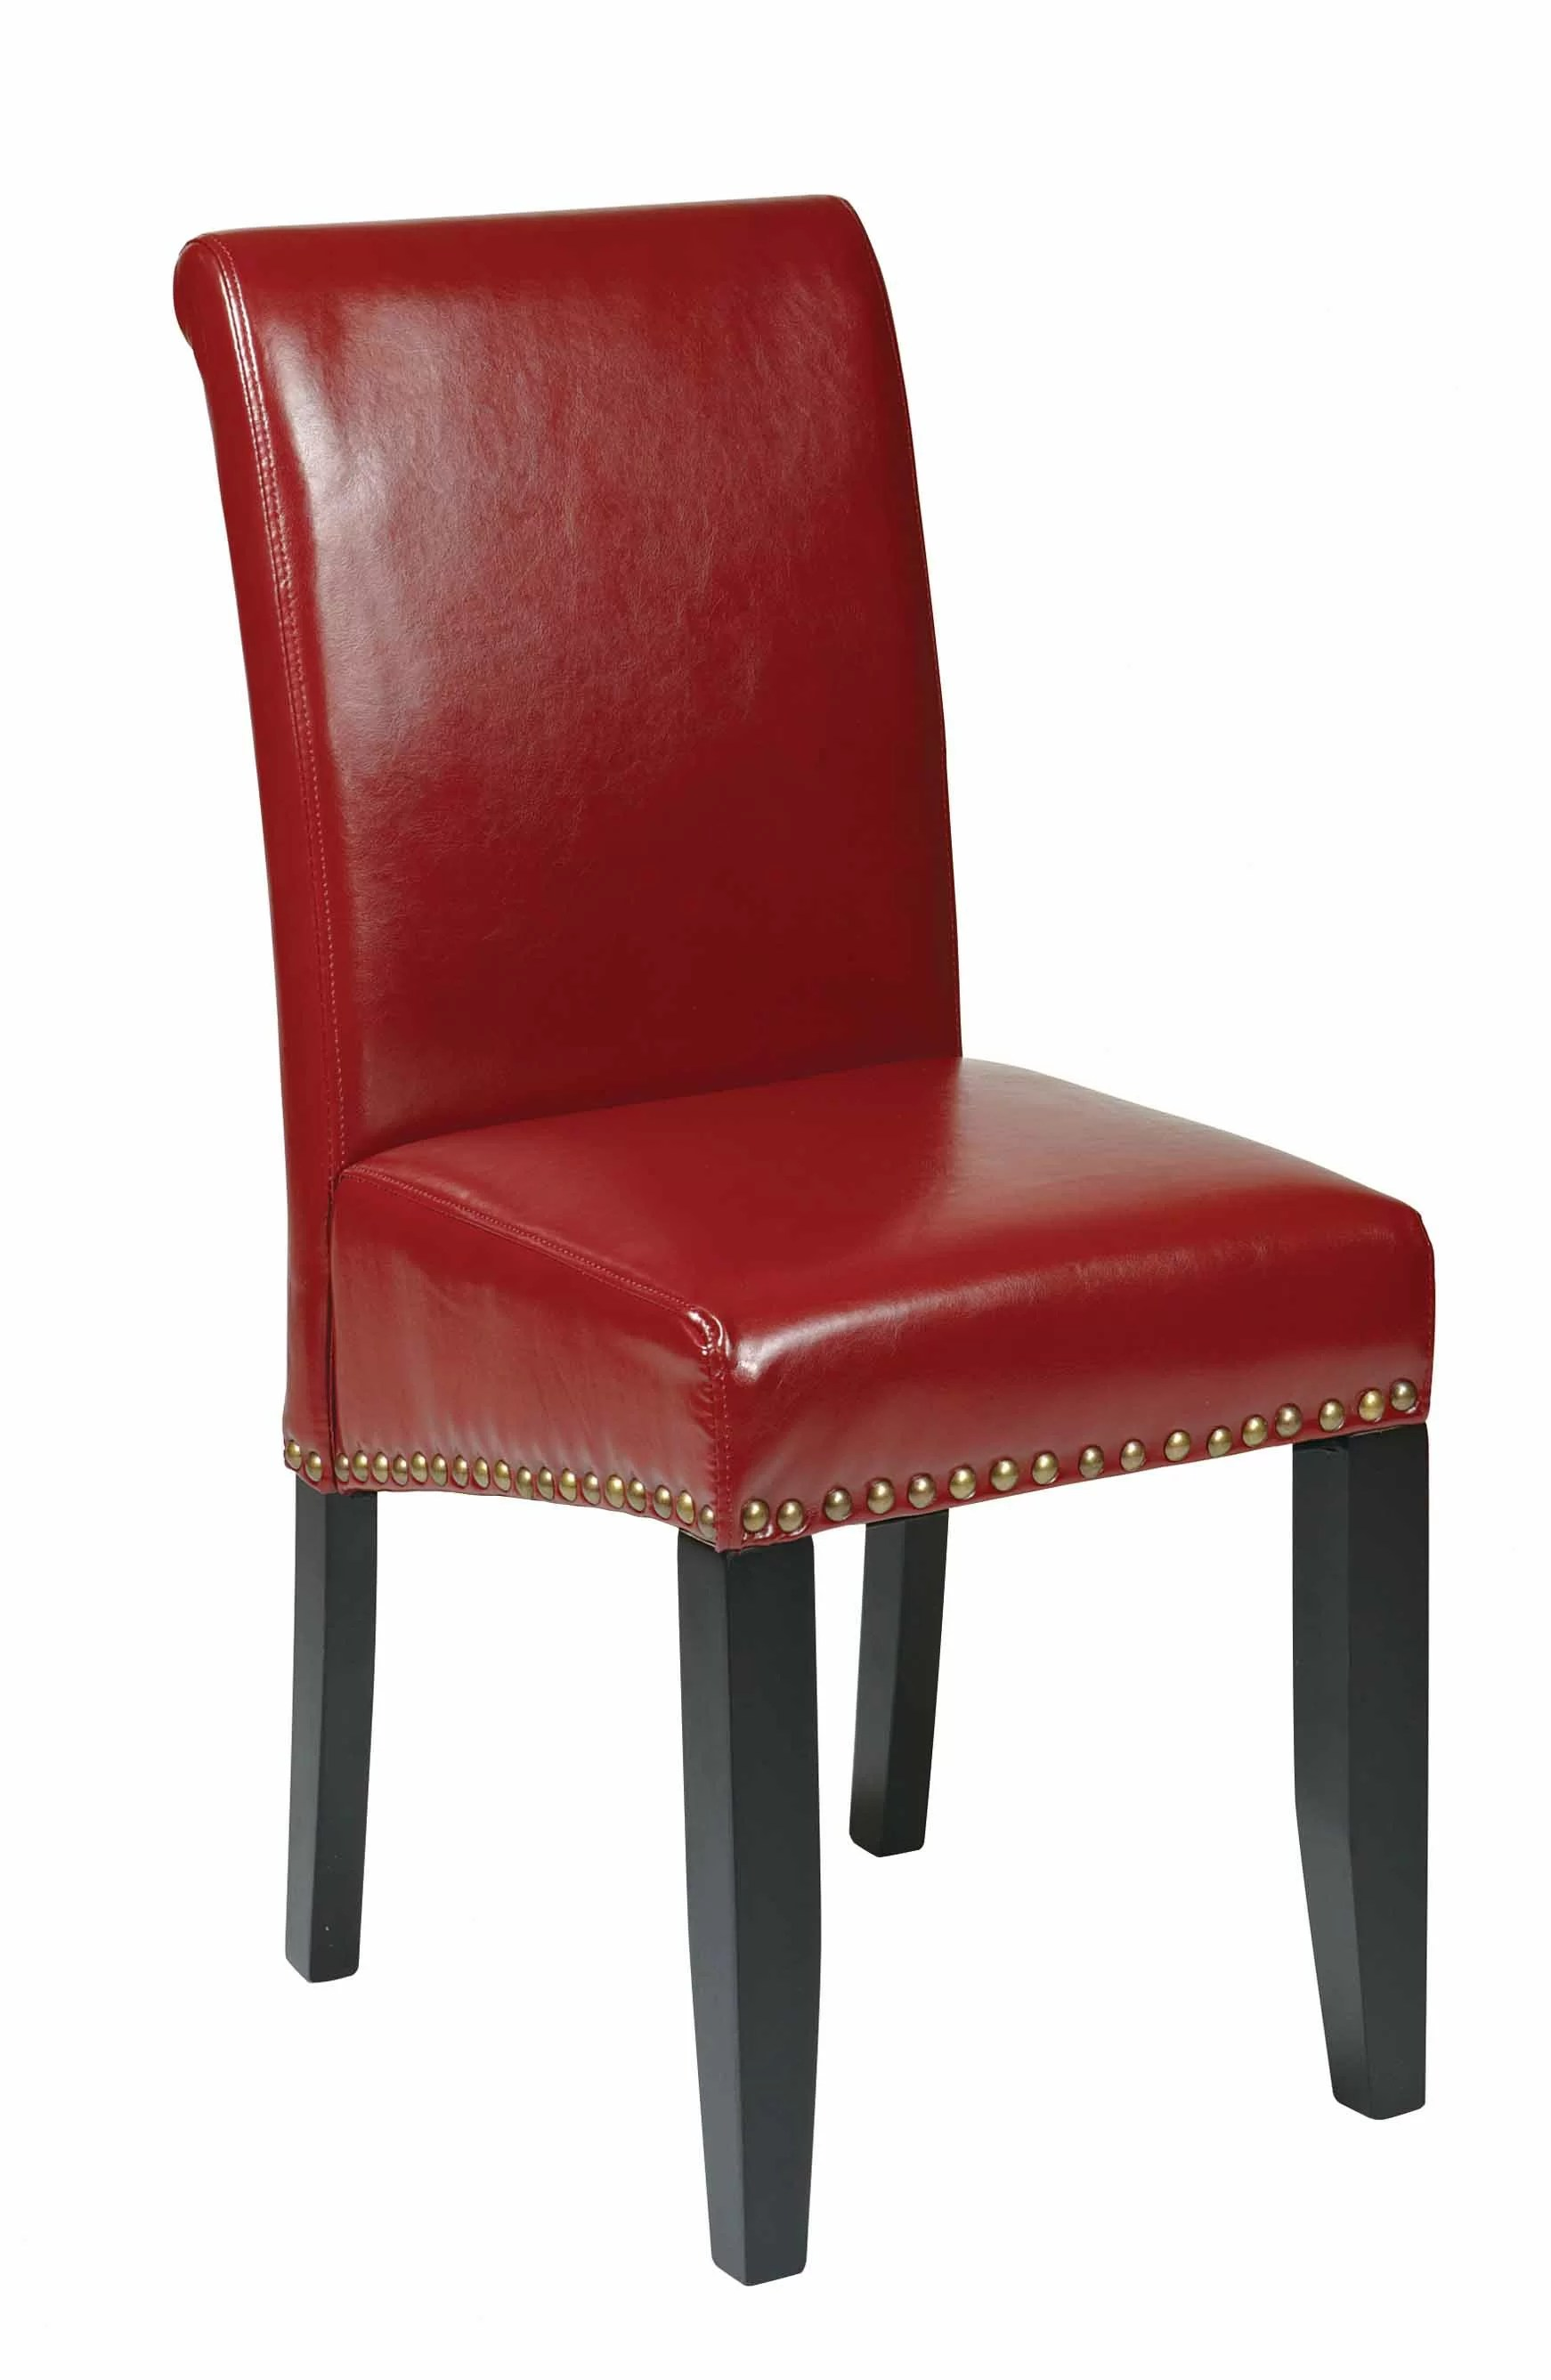 Red Upholstered Dining Chairs Chesterhill Upholstered Dining Chair